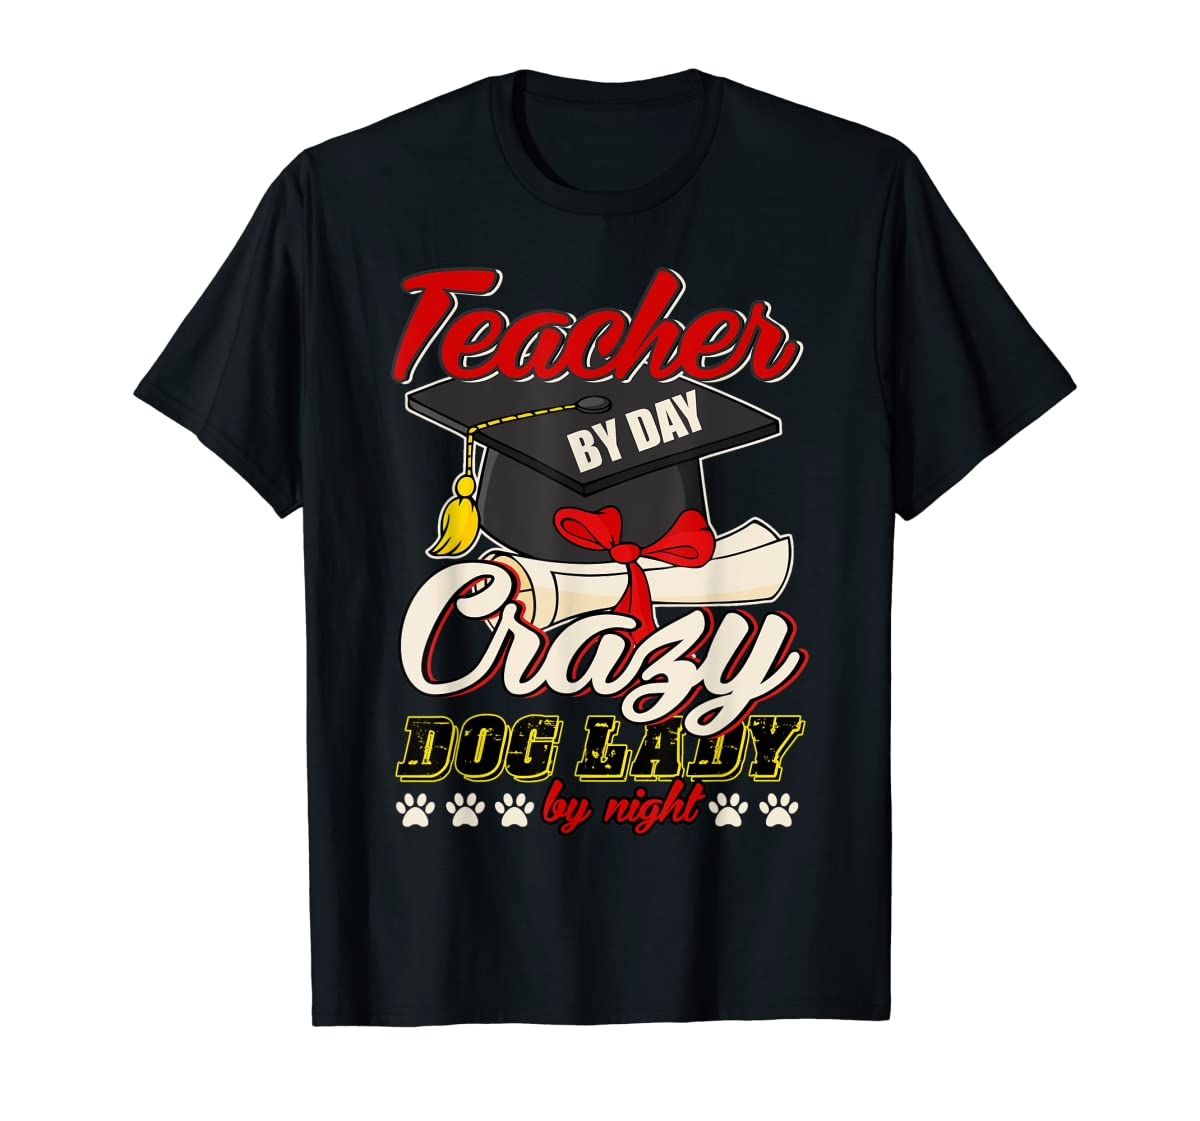 Teacher By Day T Shirt, Crazy Dog Lady By Night T Shirt-Men's T-Shirt-Black